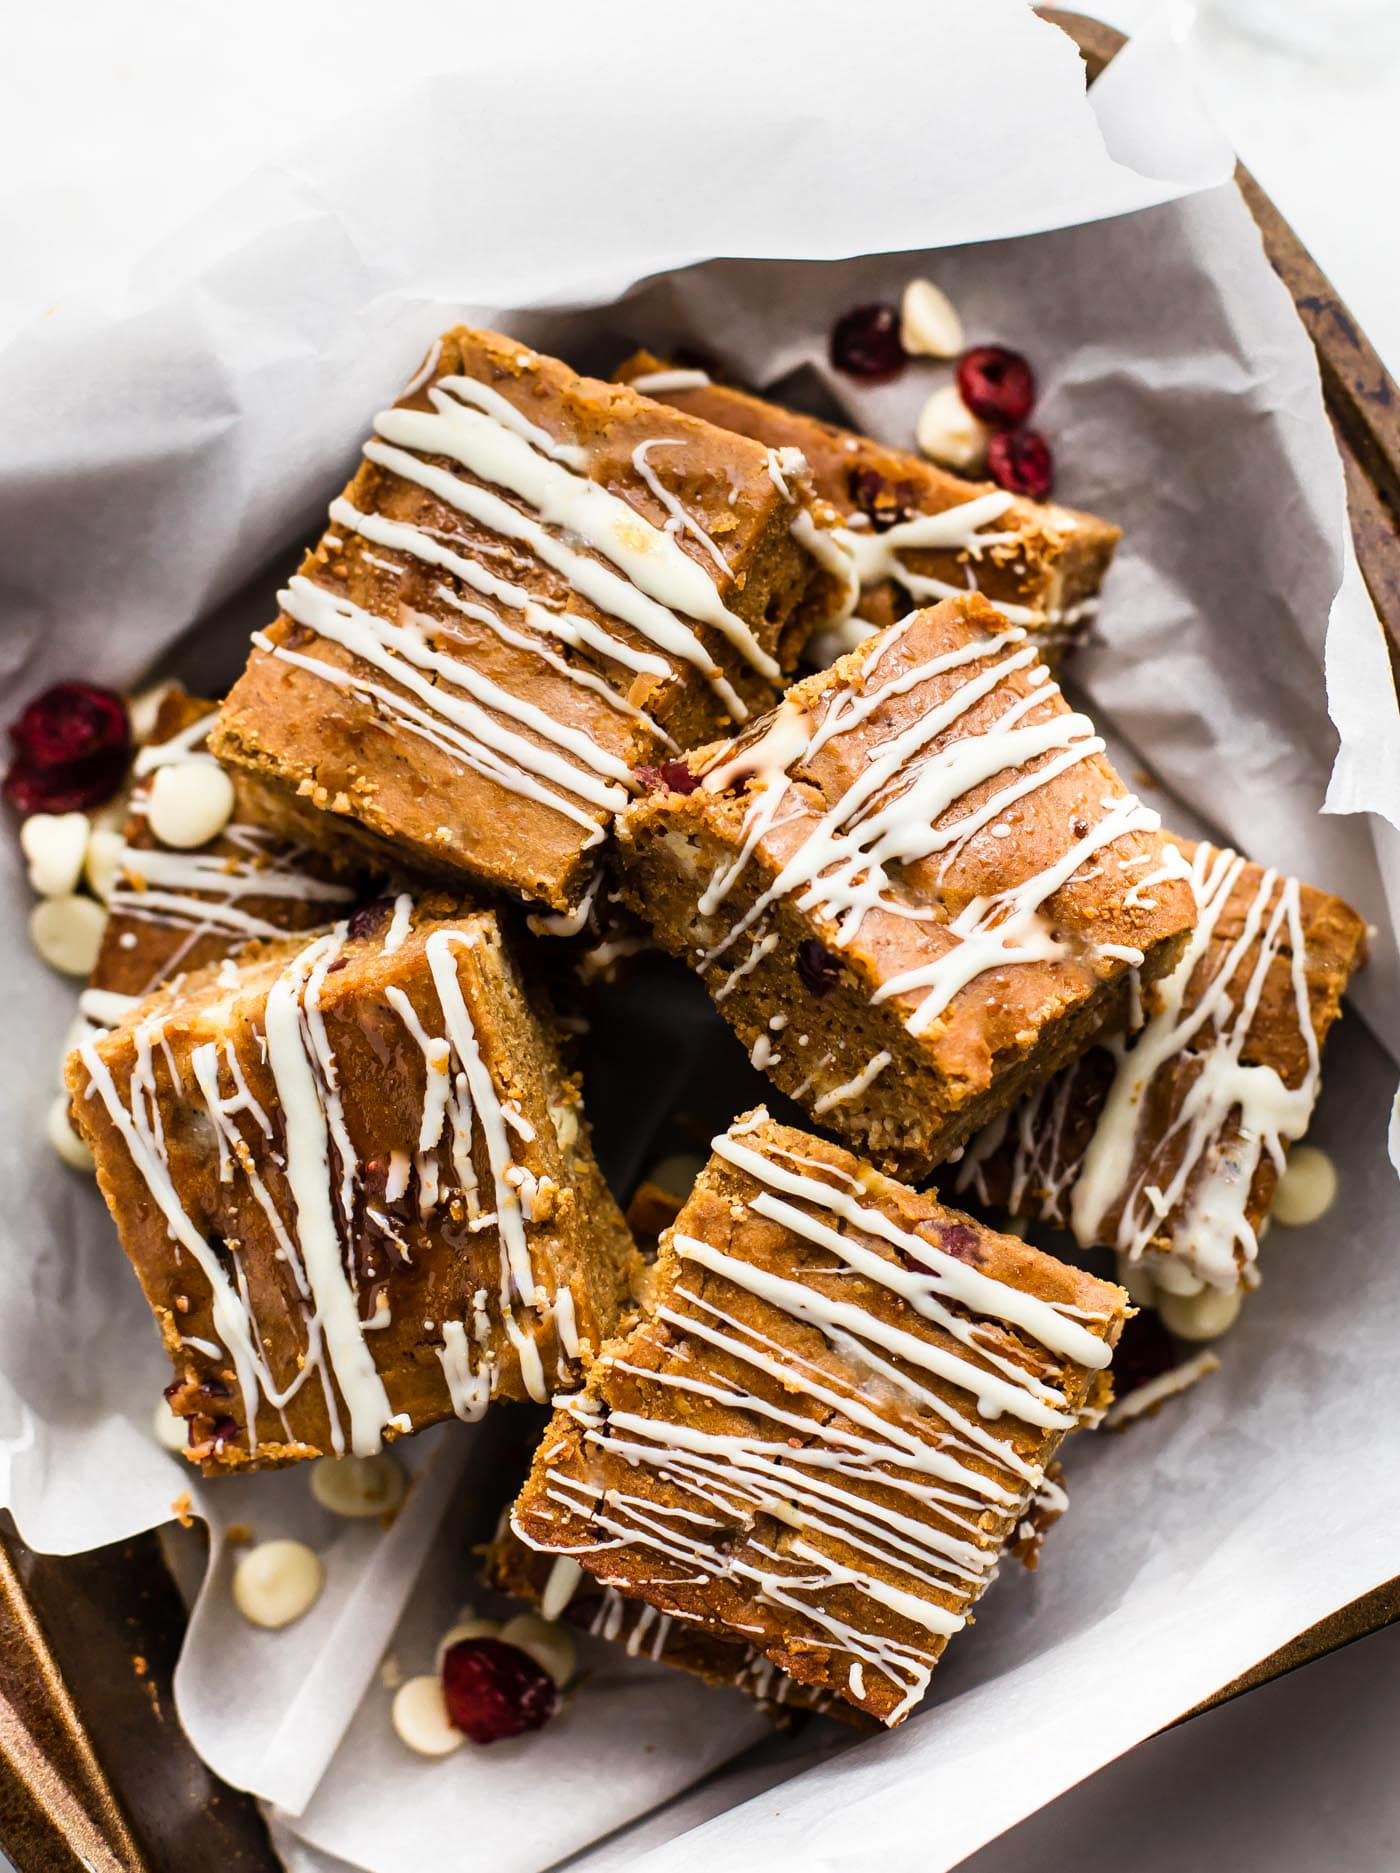 Cranberry White Chocolate Pumpkin Bars made Healthier and Gluten free! Easy to make, eggless, and delicious. Vegan friendly.